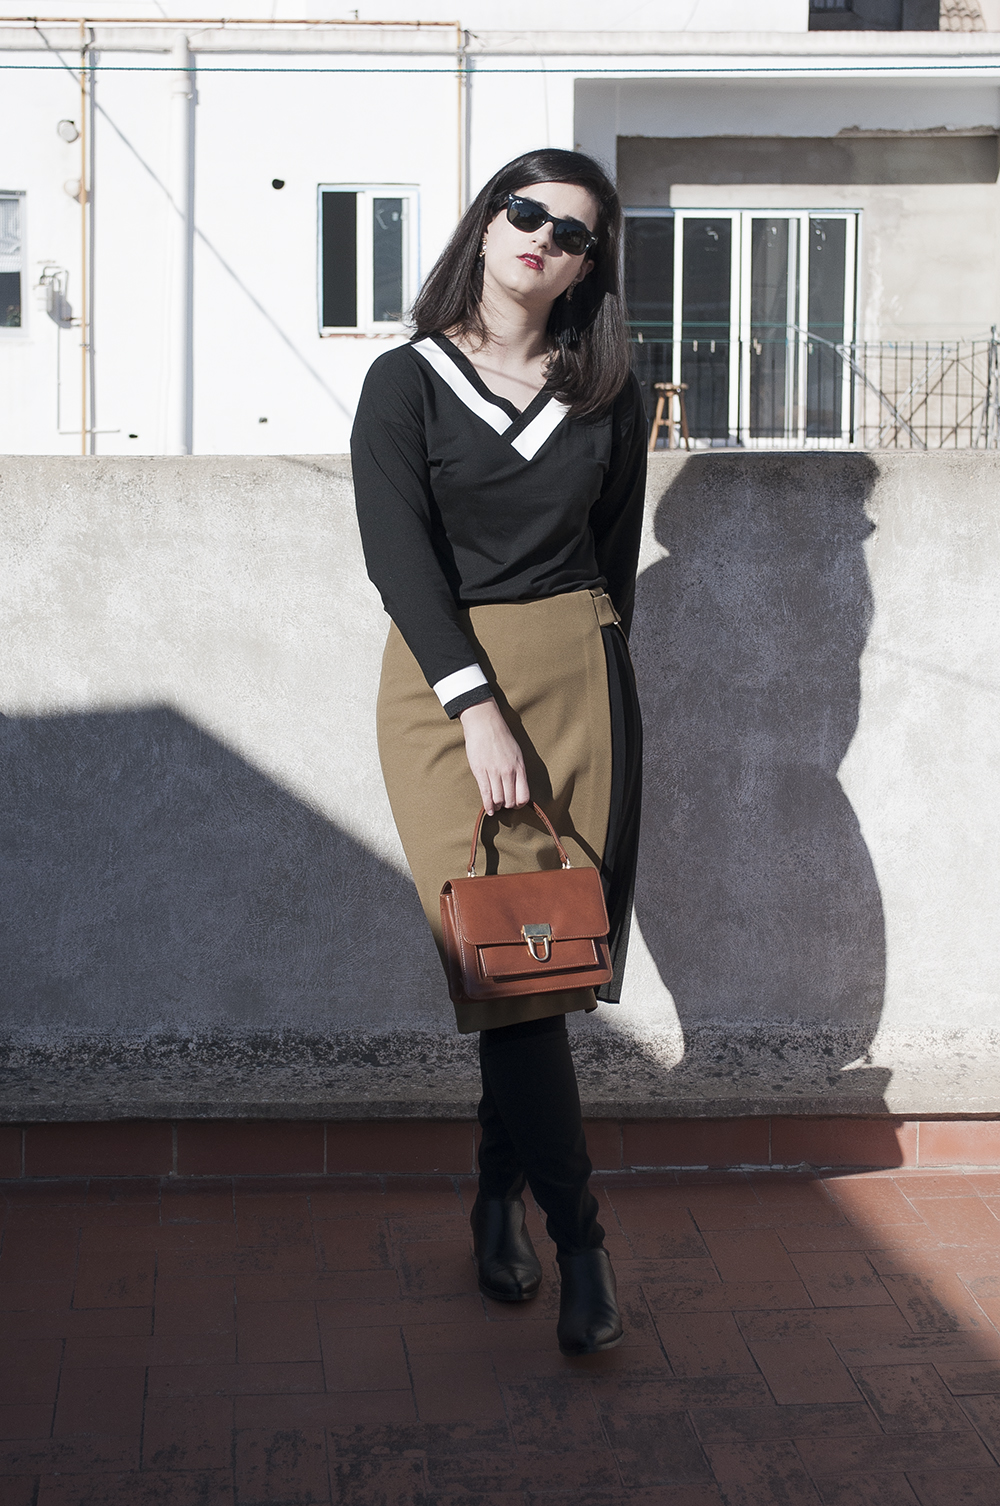 somethingfashion spain firenze italy valencia bloggers outfit shein collaboration blackwhite college sweater_0233